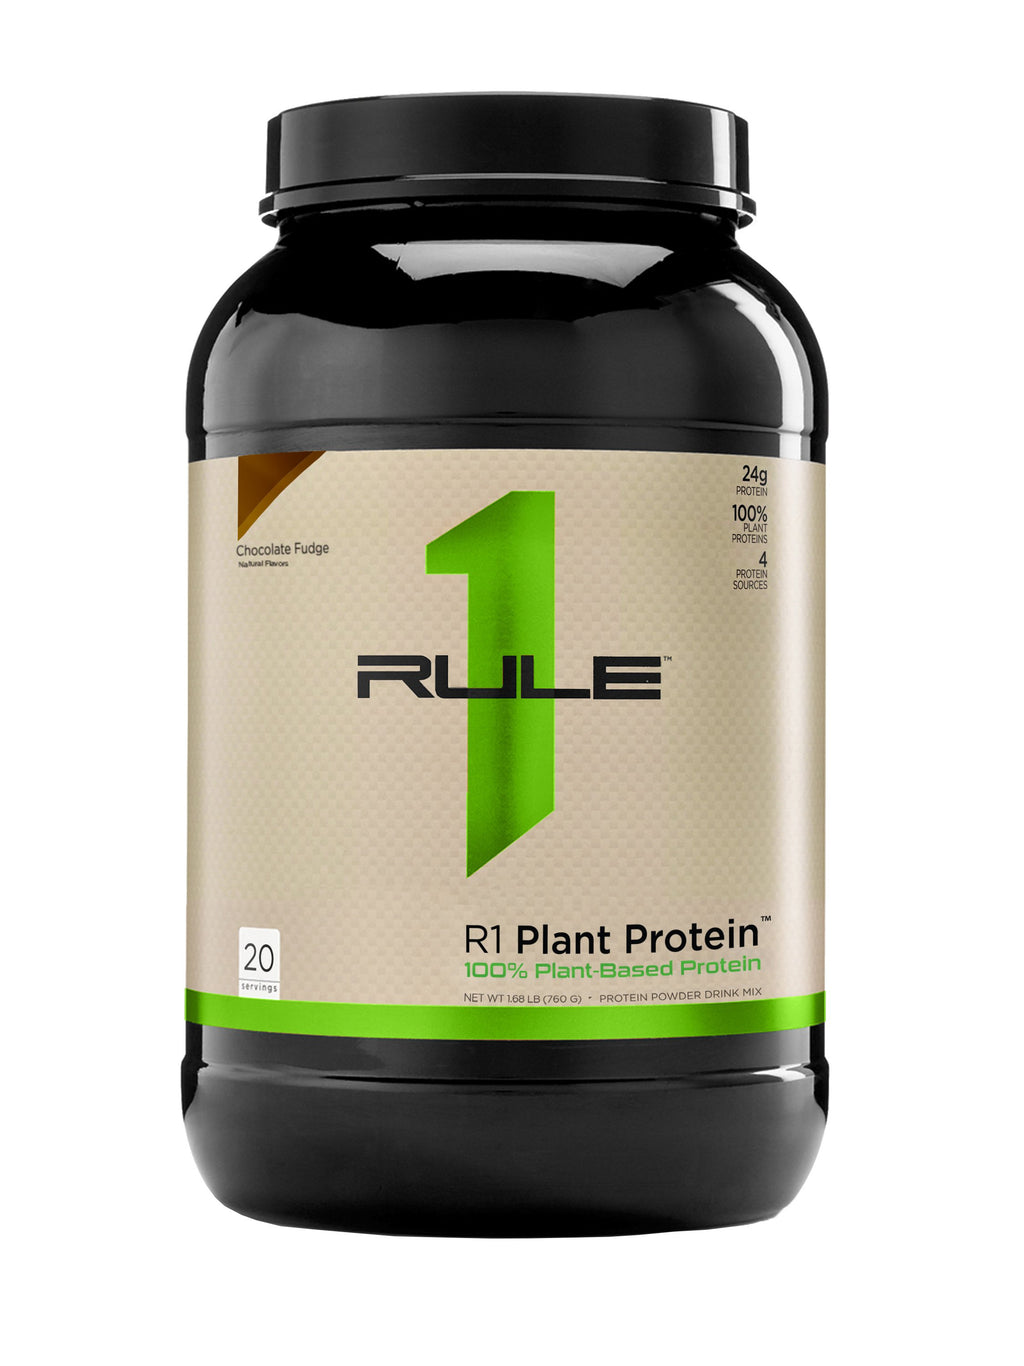 R1 Plant Protein, 20 Servings - 1.75 lb